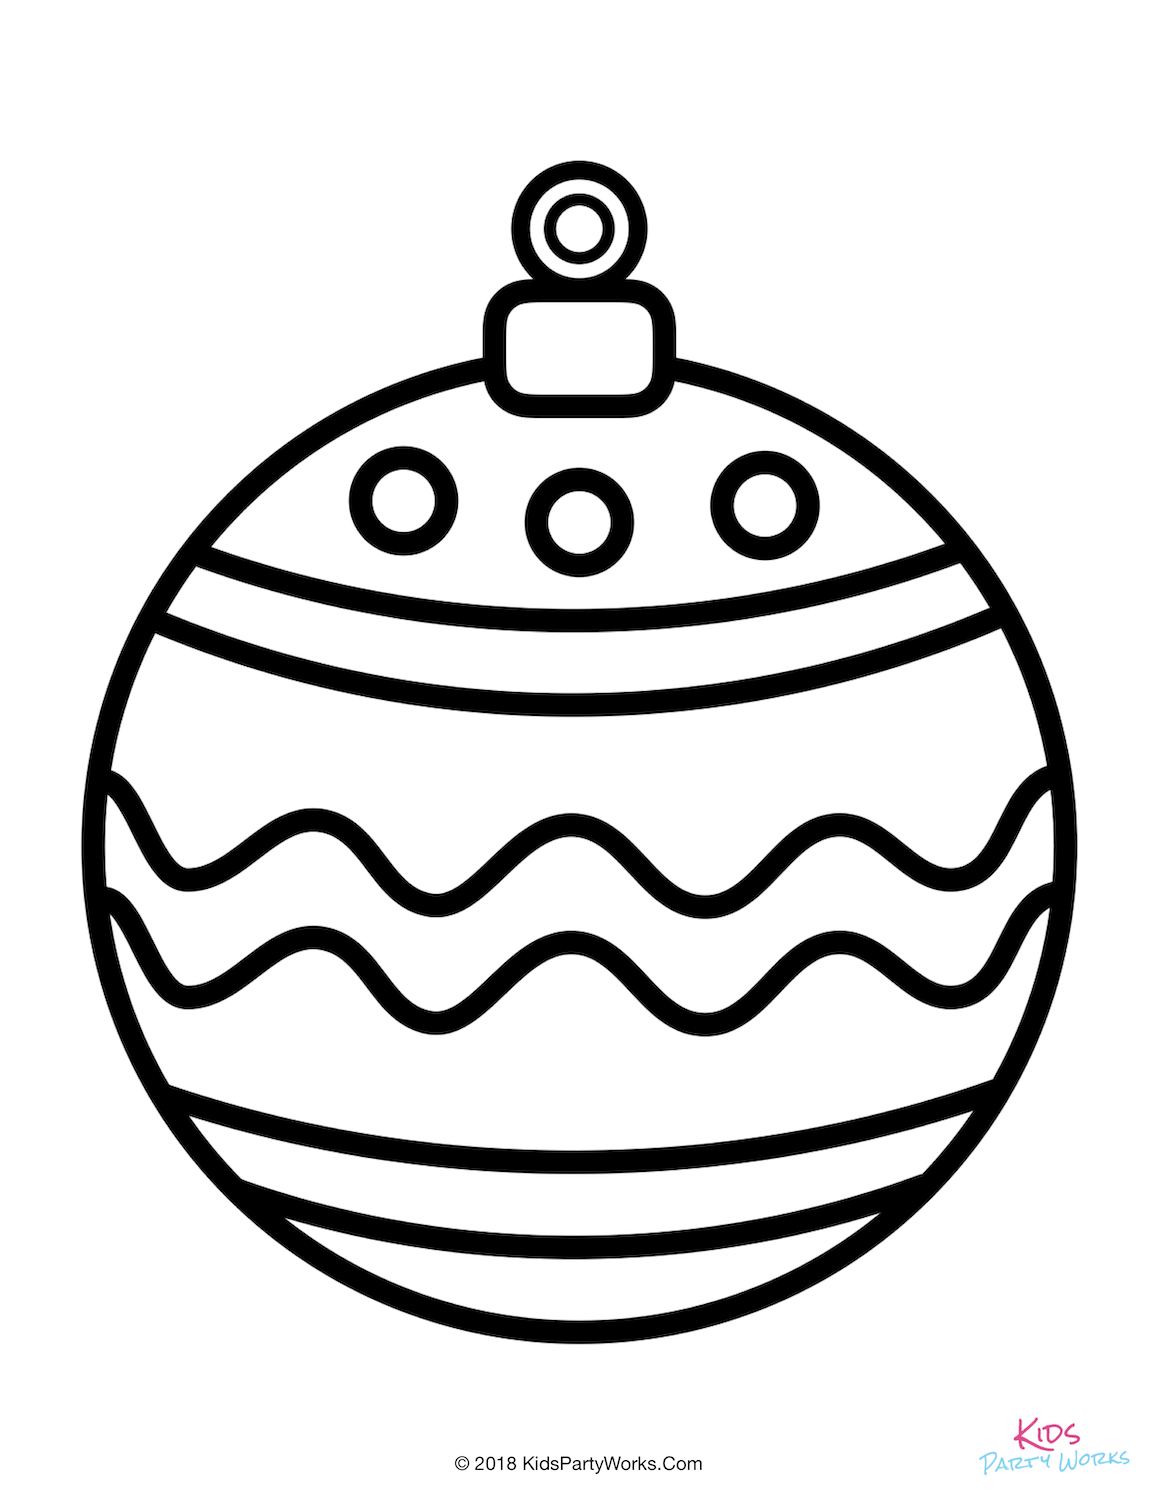 ornaments coloring pages christmas ornaments coloring pages getcoloringpagescom ornaments coloring pages